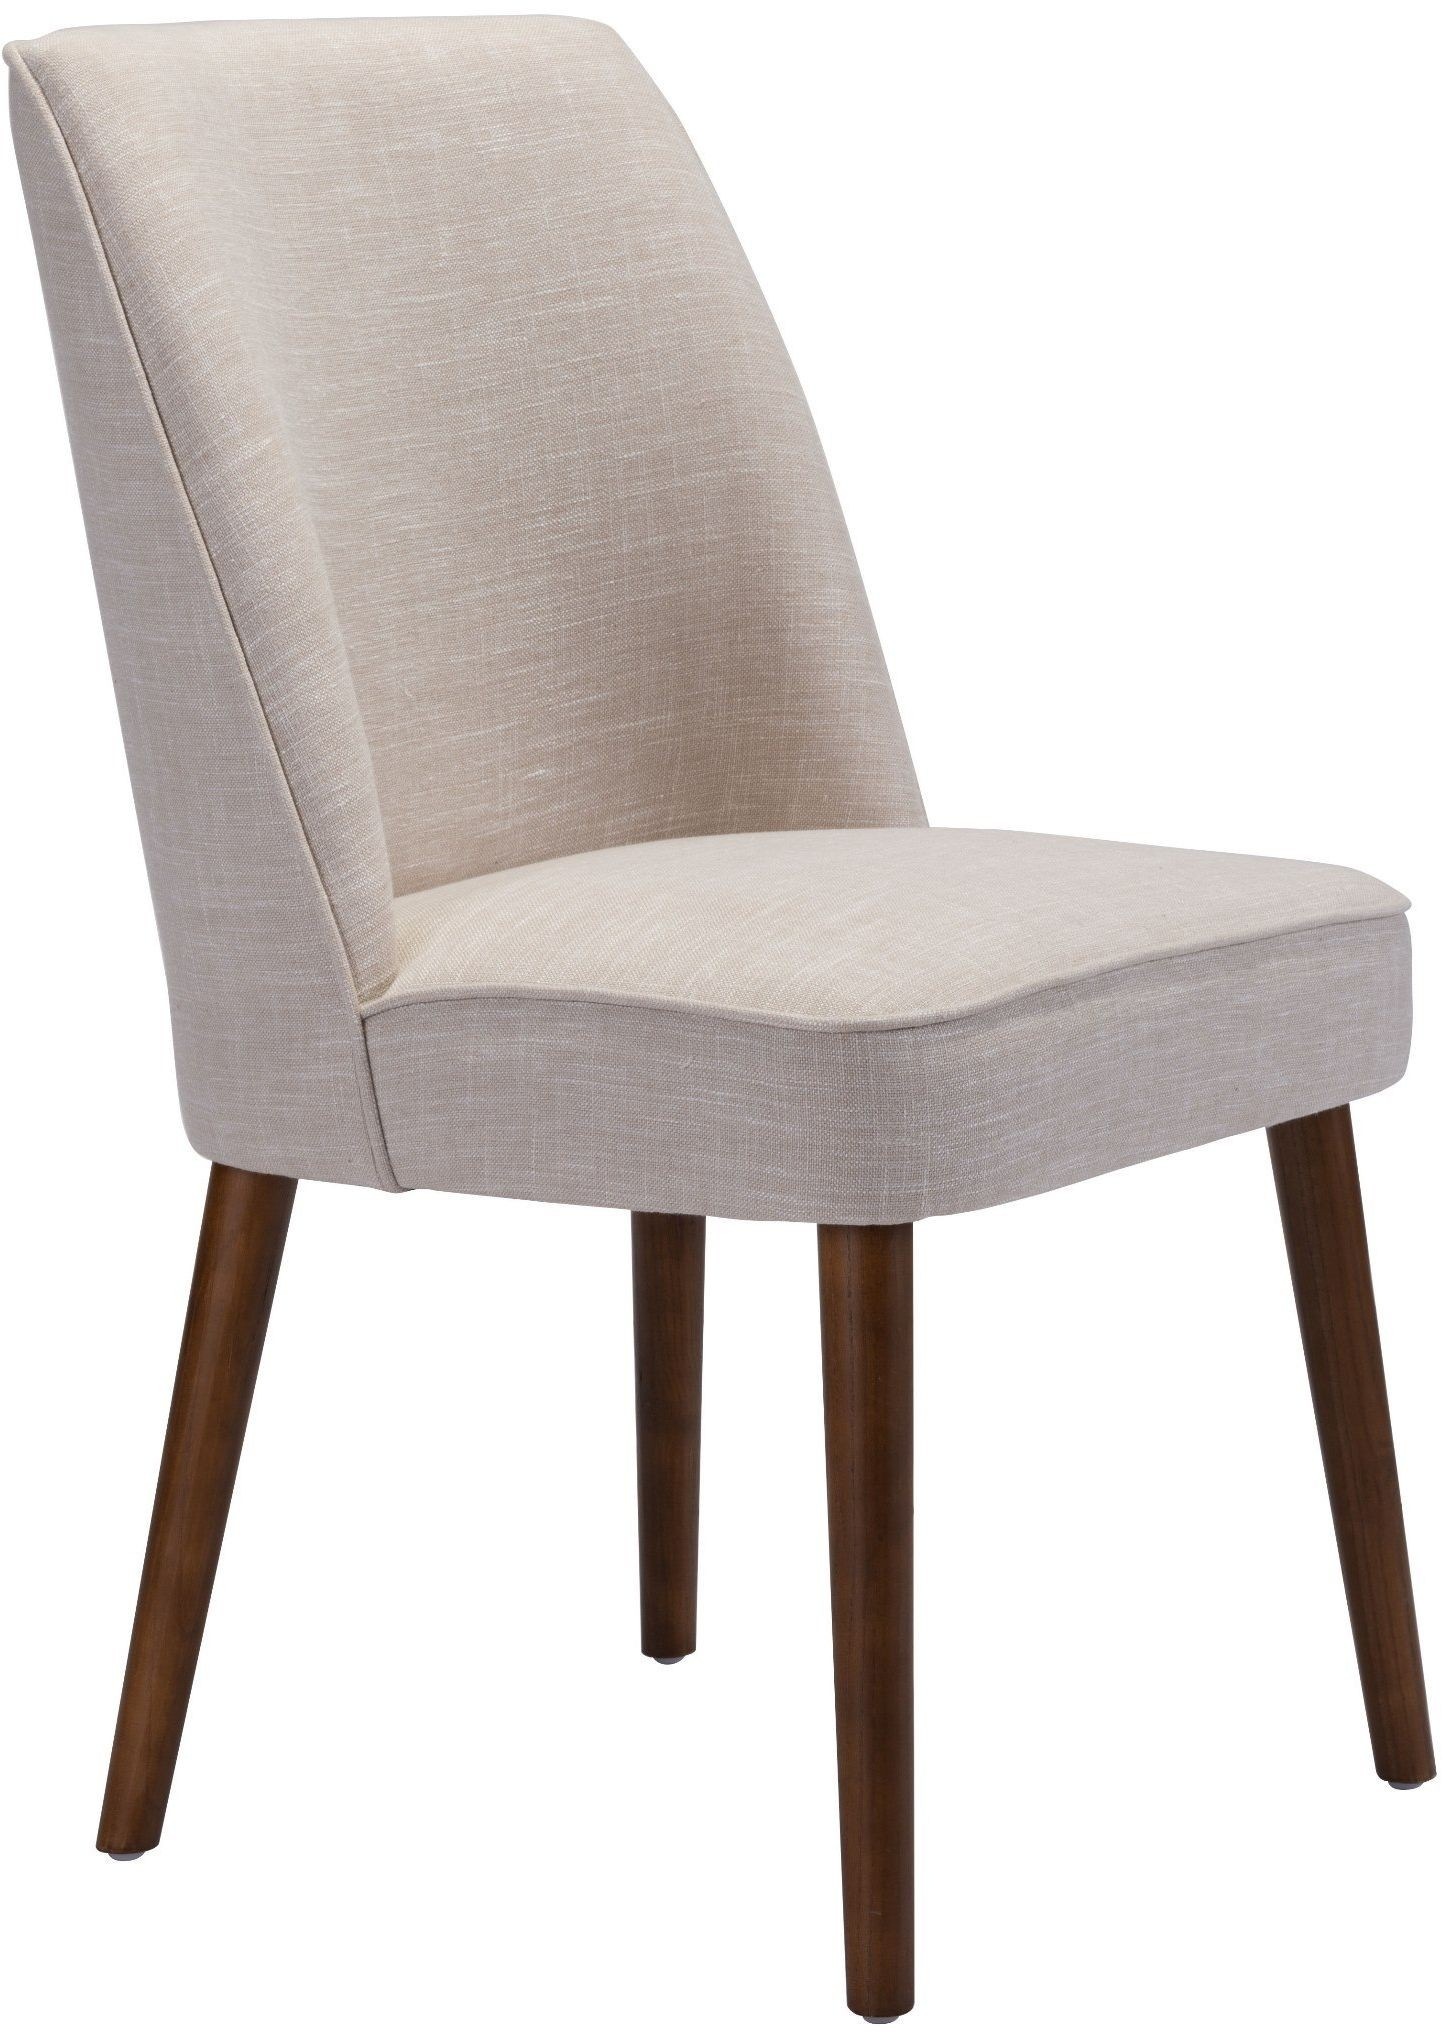 kennedy beige dining chair set of 2 from zuo coleman furniture. Black Bedroom Furniture Sets. Home Design Ideas